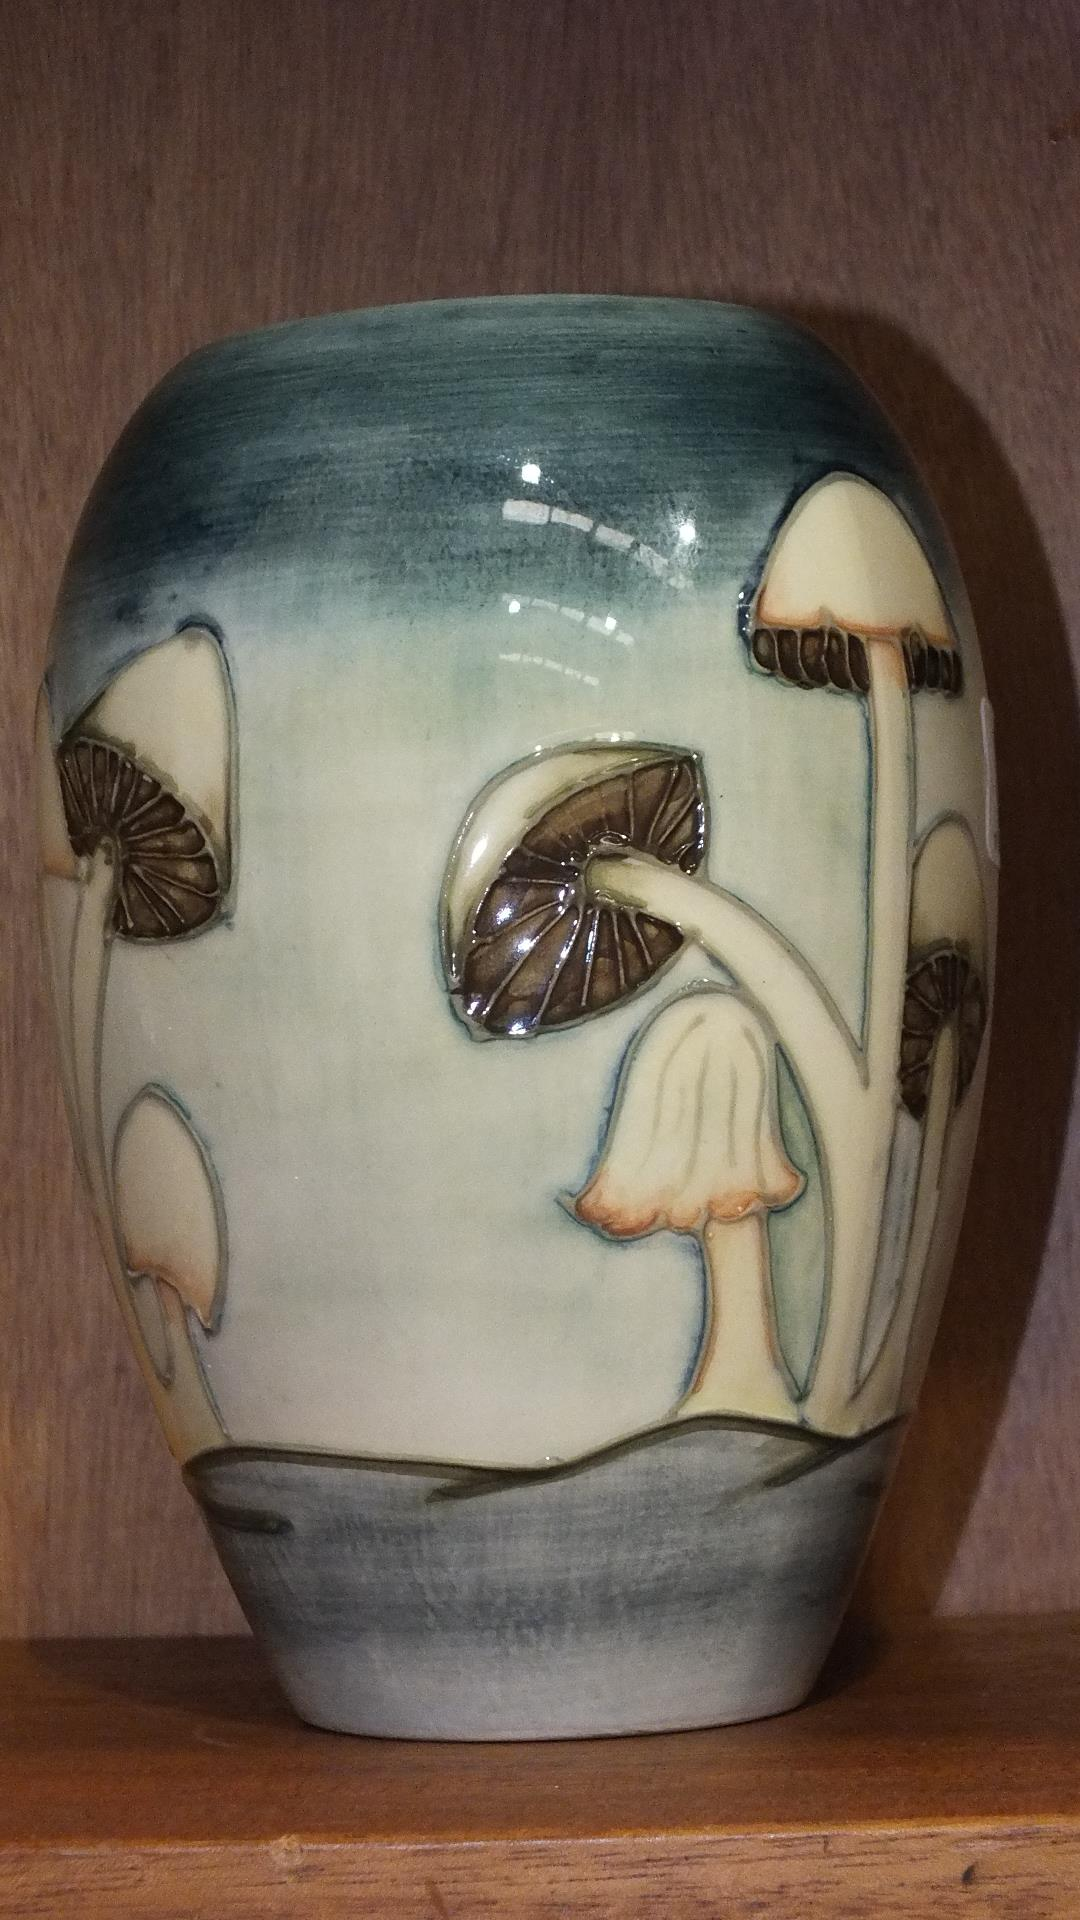 Lot 171 - A Moorcroft 'Fairy Rings' pattern ovoid shape vase decorated with toadstools on a blue and mottled